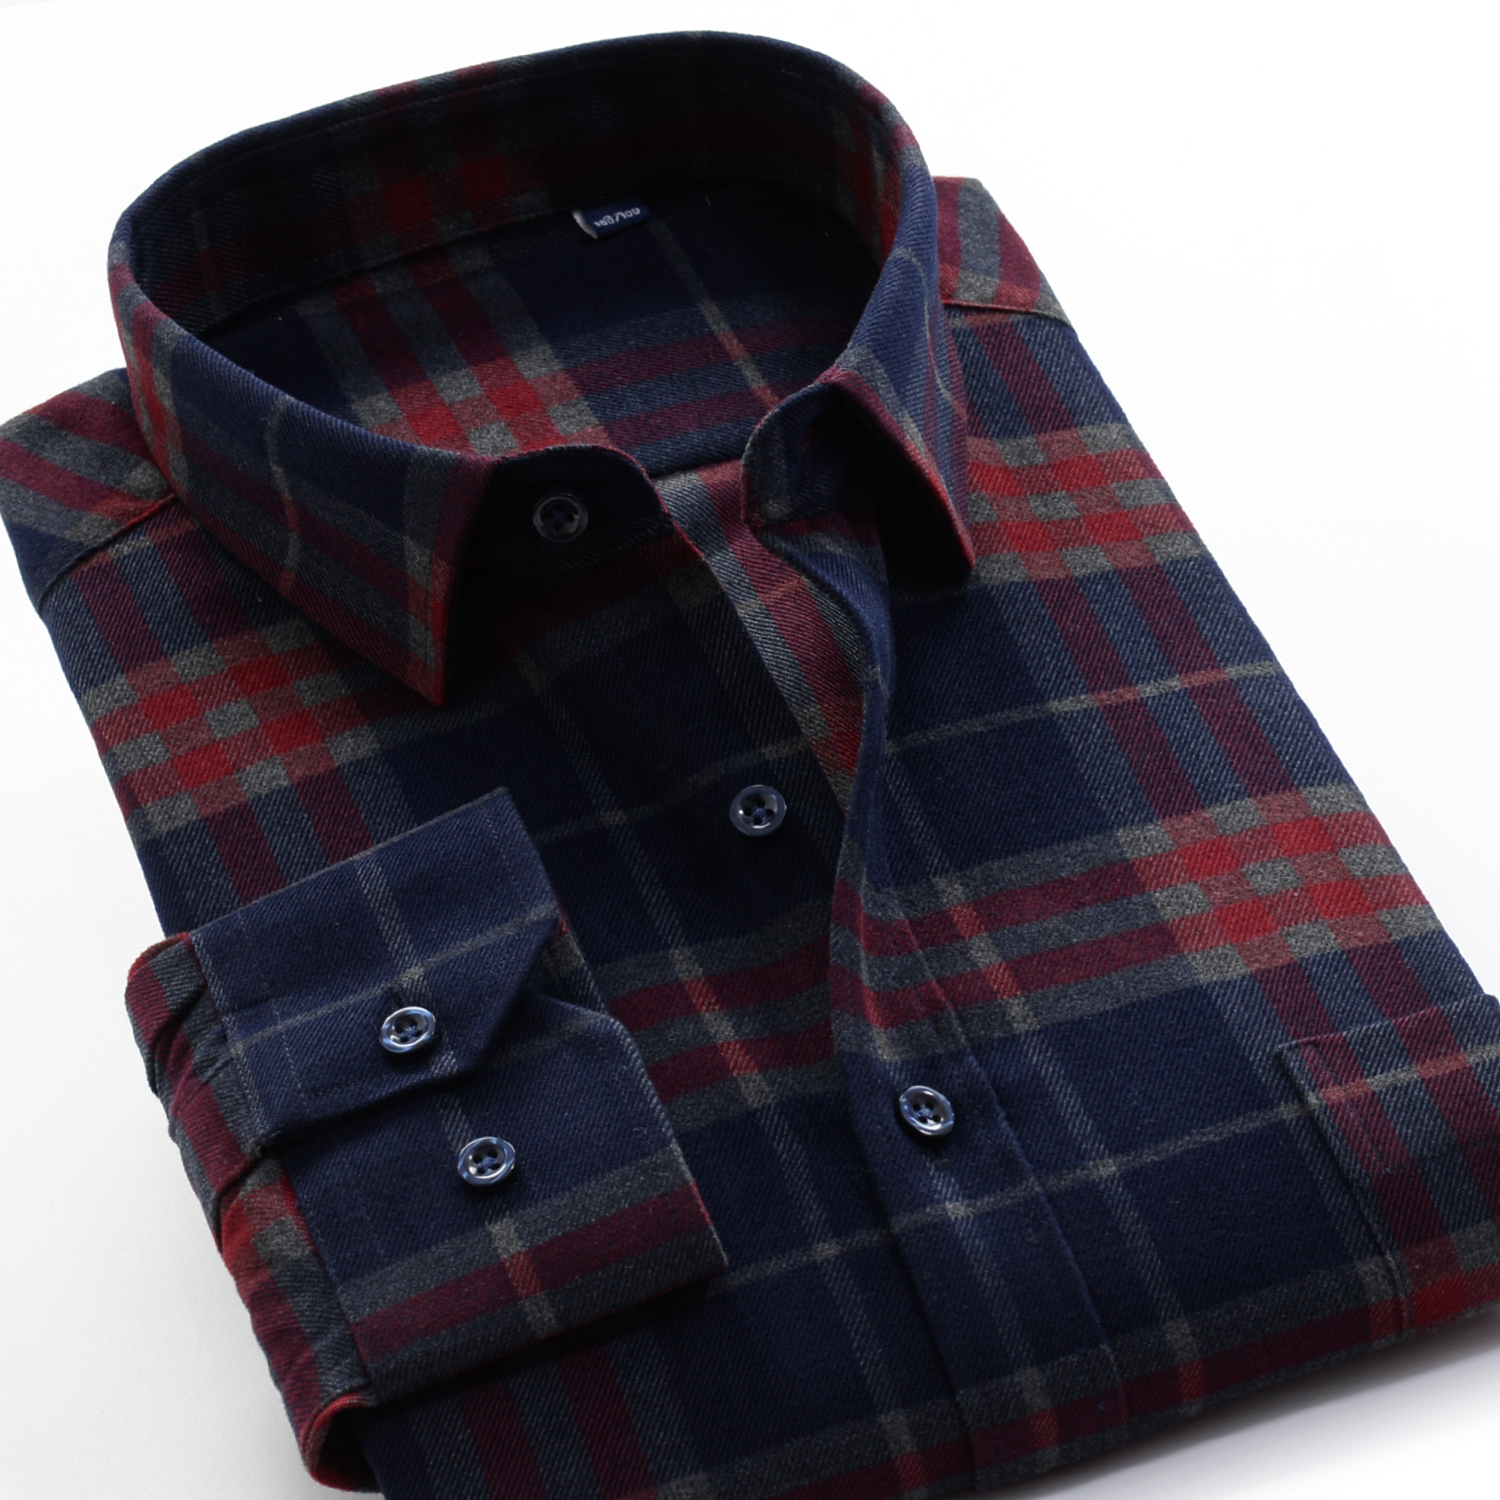 Image 2 - Mens Thick Plaid Shirt 2019 New Classic Style Fashion Casual  Loose Long Sleeved Sanded Shirt Male Large Size 7XL 8XL 9XL 10XLCasual  Shirts